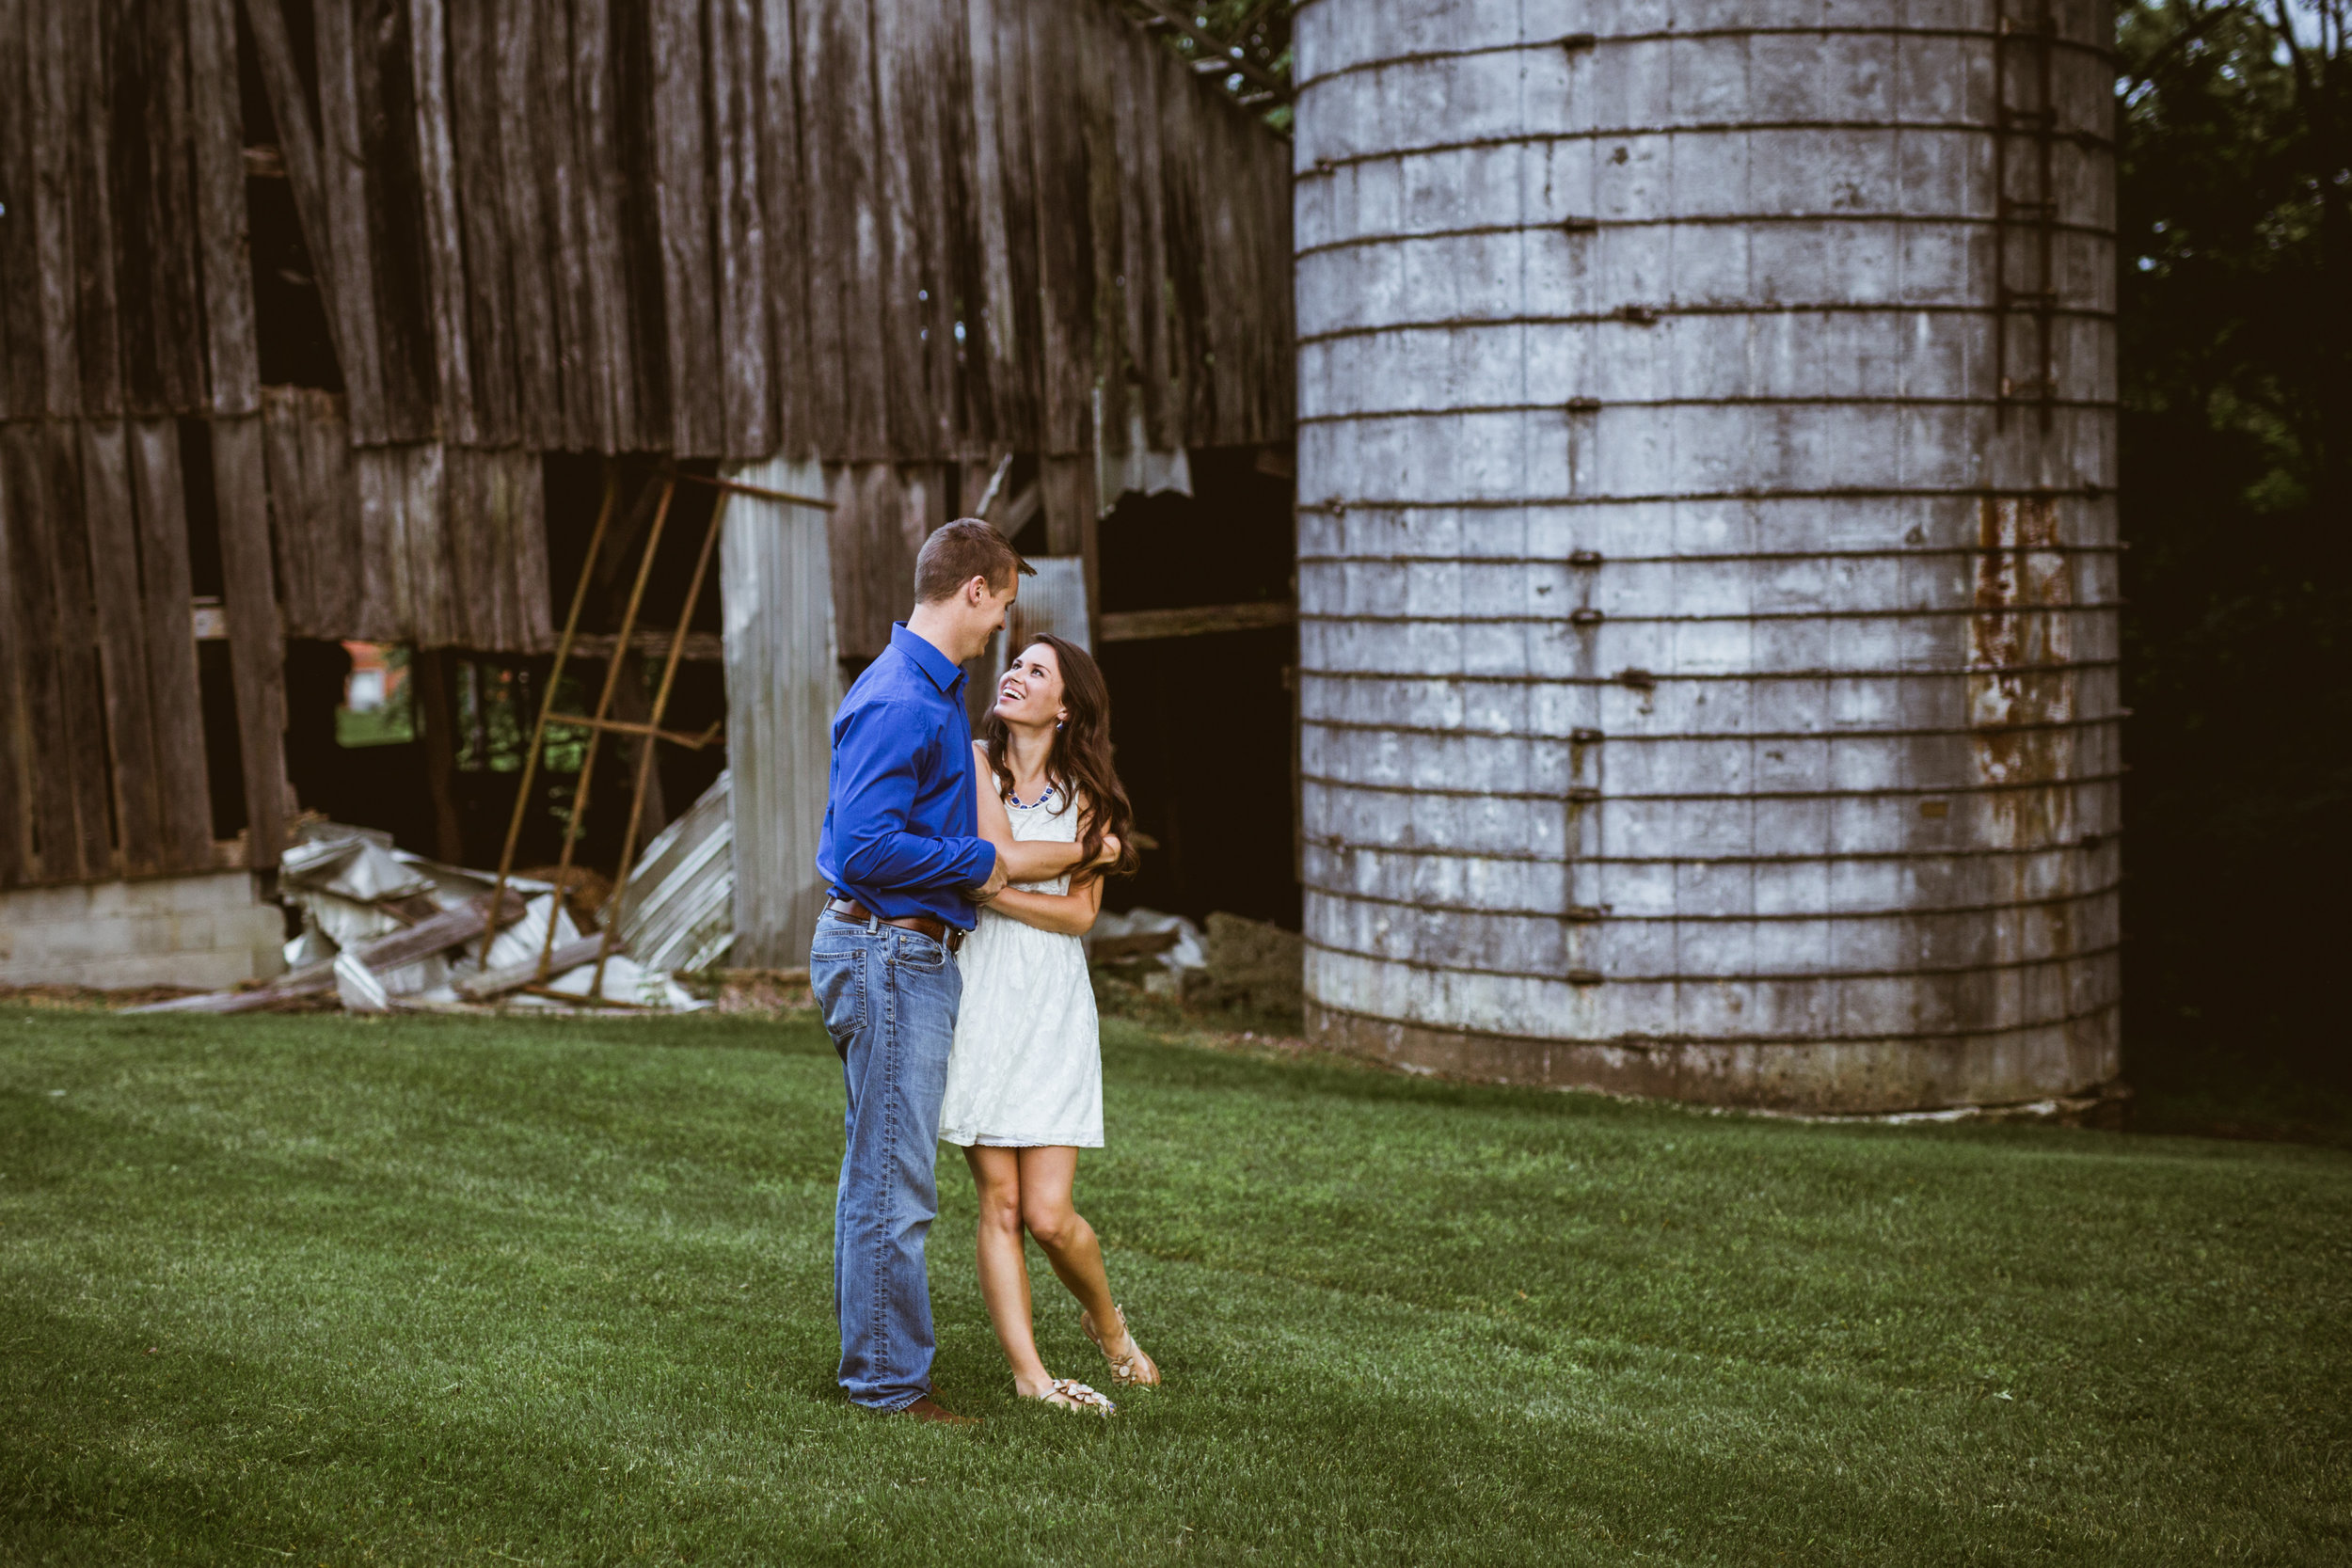 Todd-Hunt Engagement-92.jpg